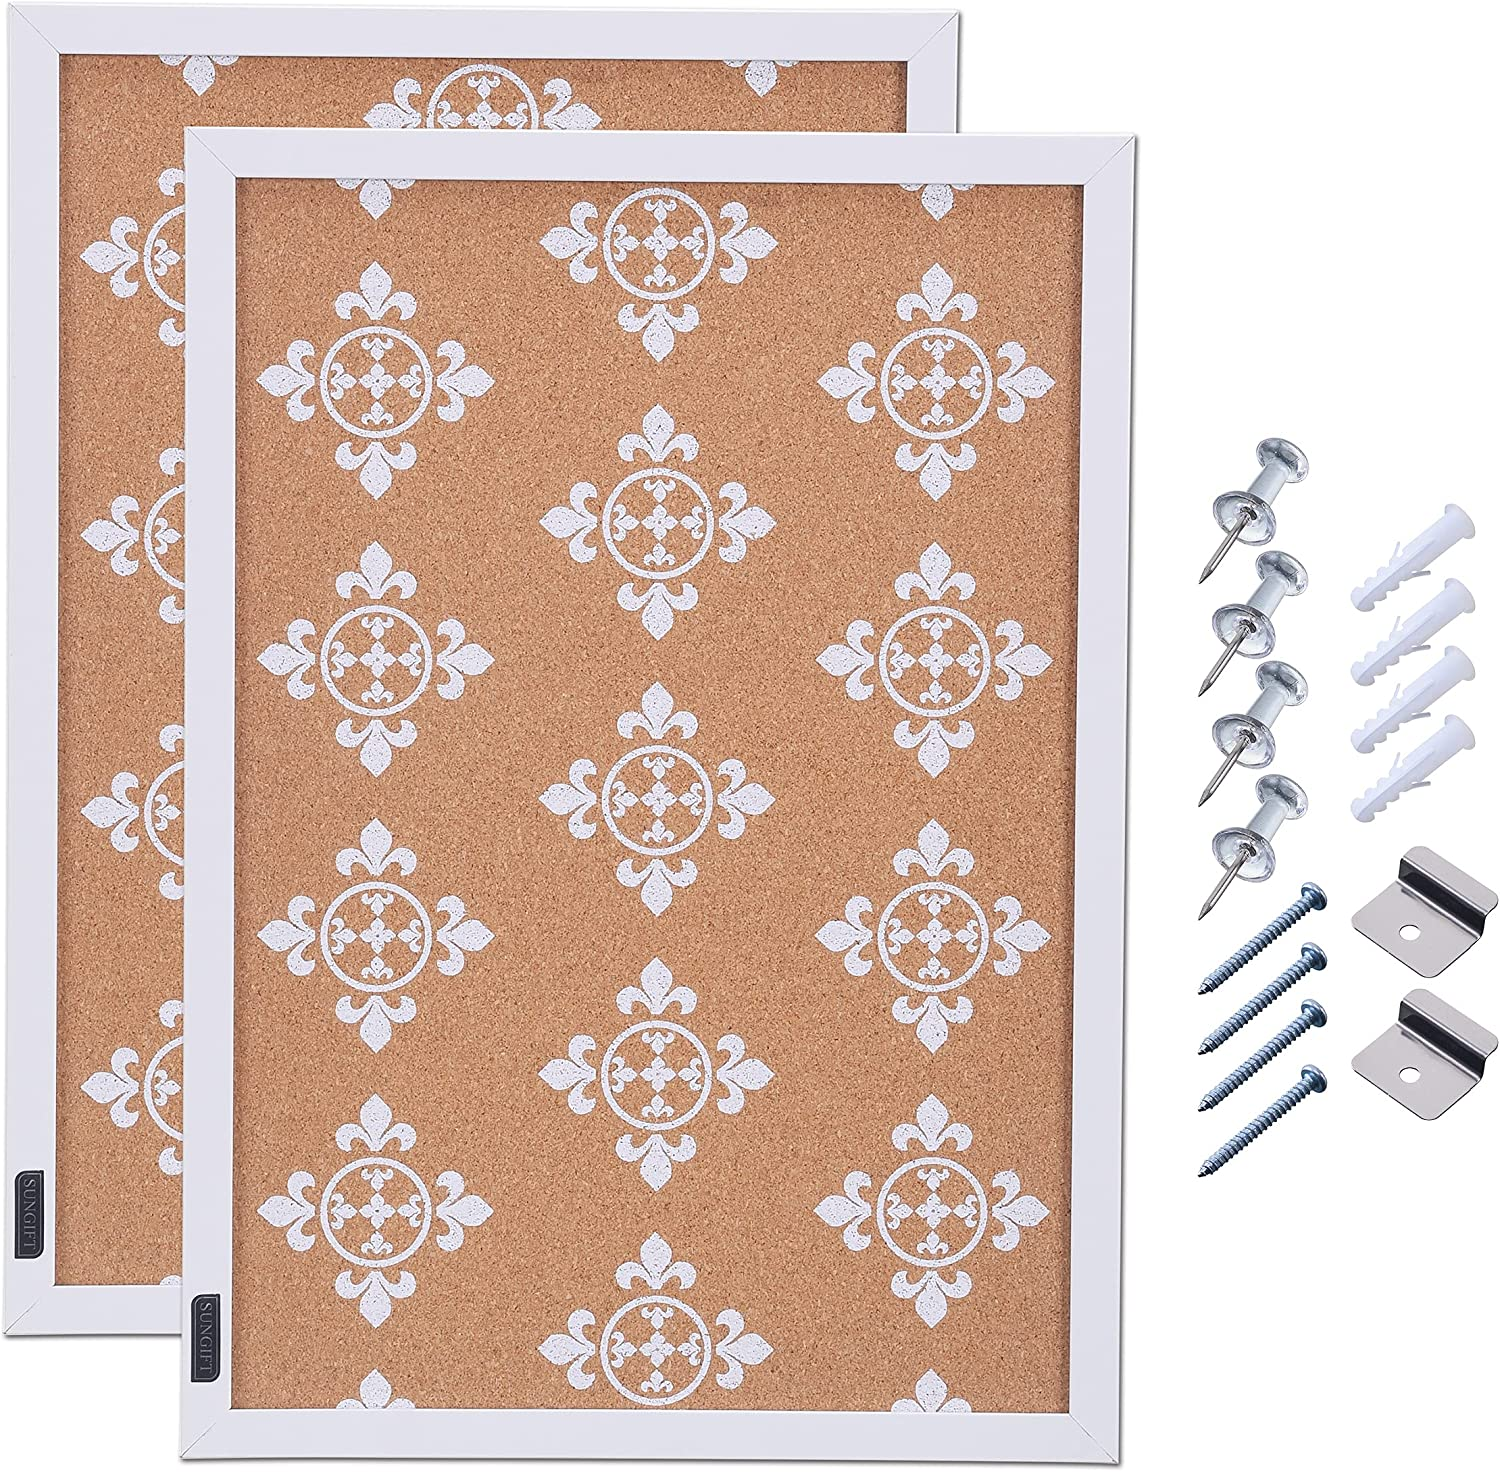 SUNGIFT Cork Bulletin Board 17 x 12 Inches with White Frame Floral Print Cork Tiles 2 Pack Long Cork Board for Wall with Pushpins Corkboards for School, Home, Office, Bedroom Decor